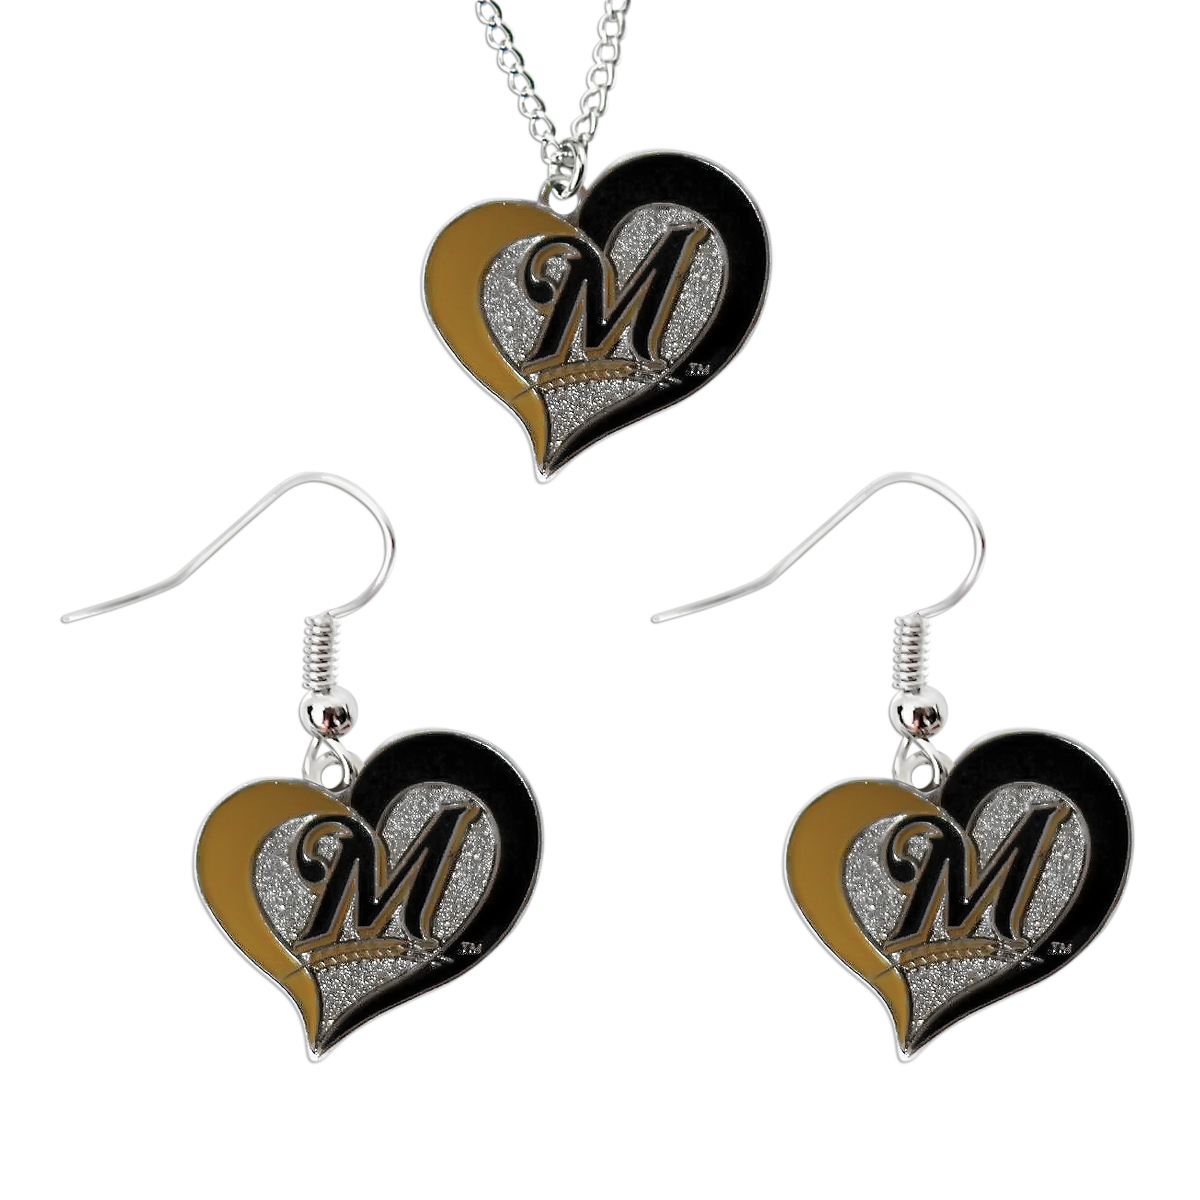 Primary image for MLB Milwaukee Brewers Swirl Heart Necklace and Dangle Earring Set Charm Gift